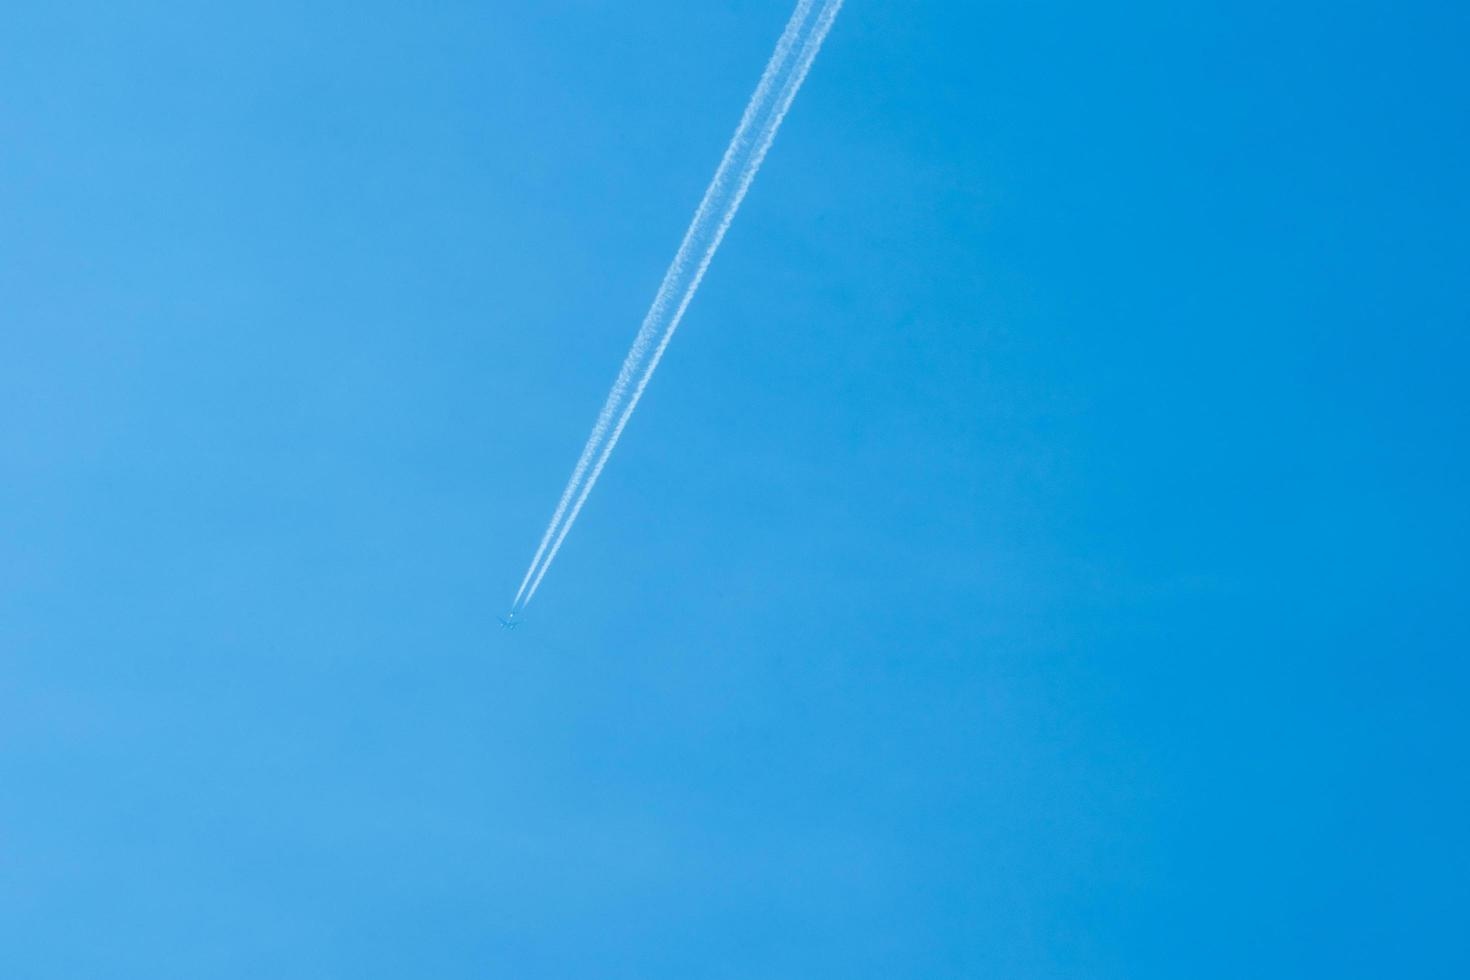 Airplane flying in the clear blue sky with white trail along the route photo